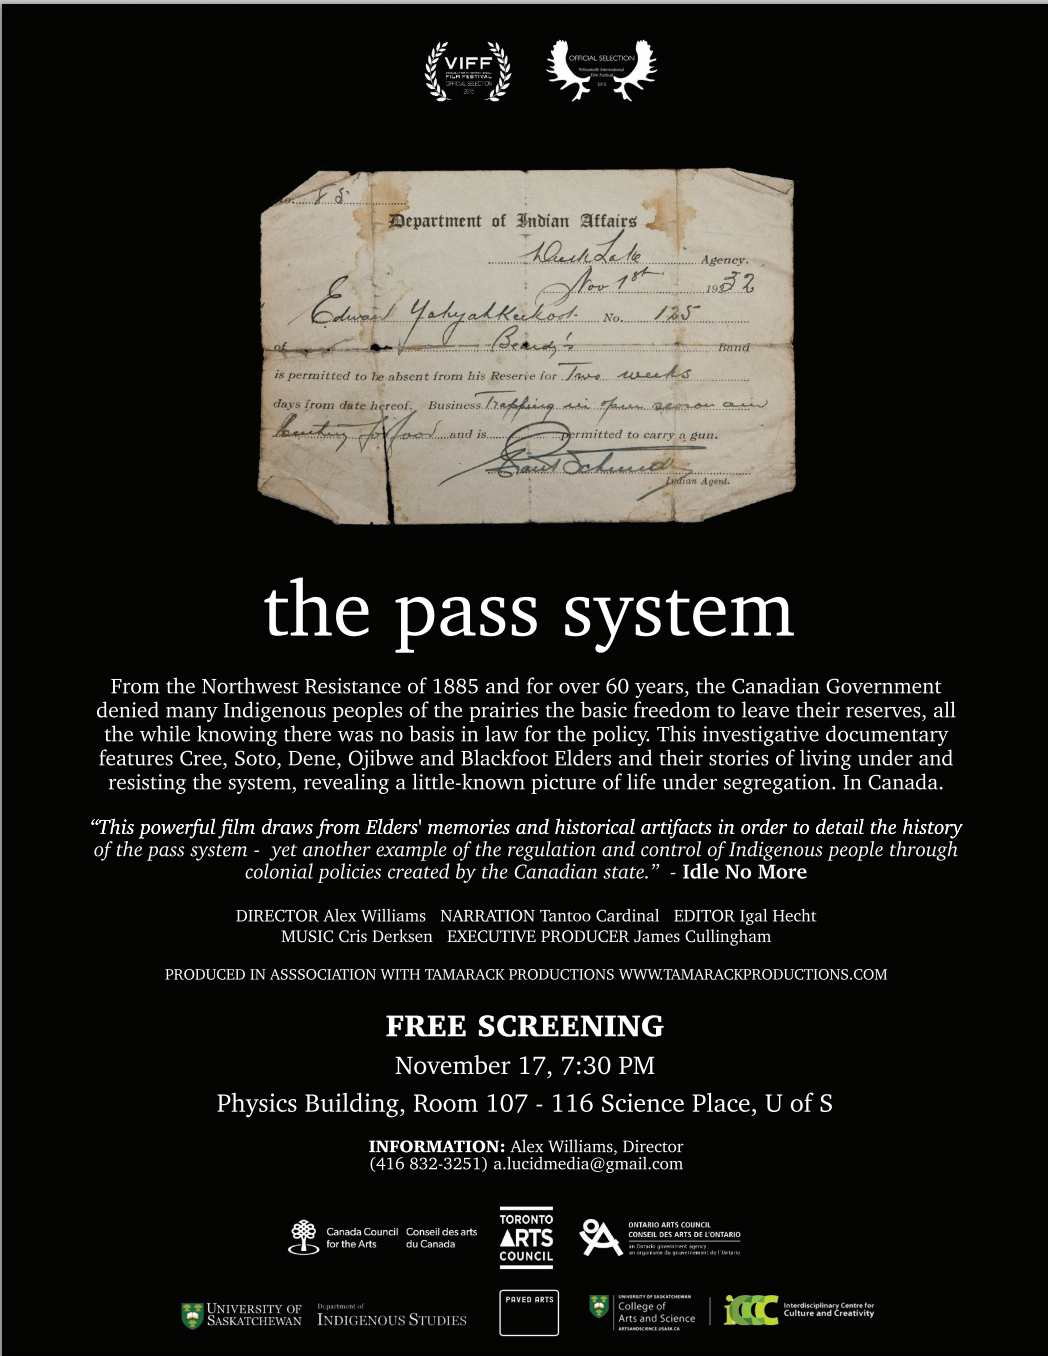 Click photo to view the Pass System's screening posters